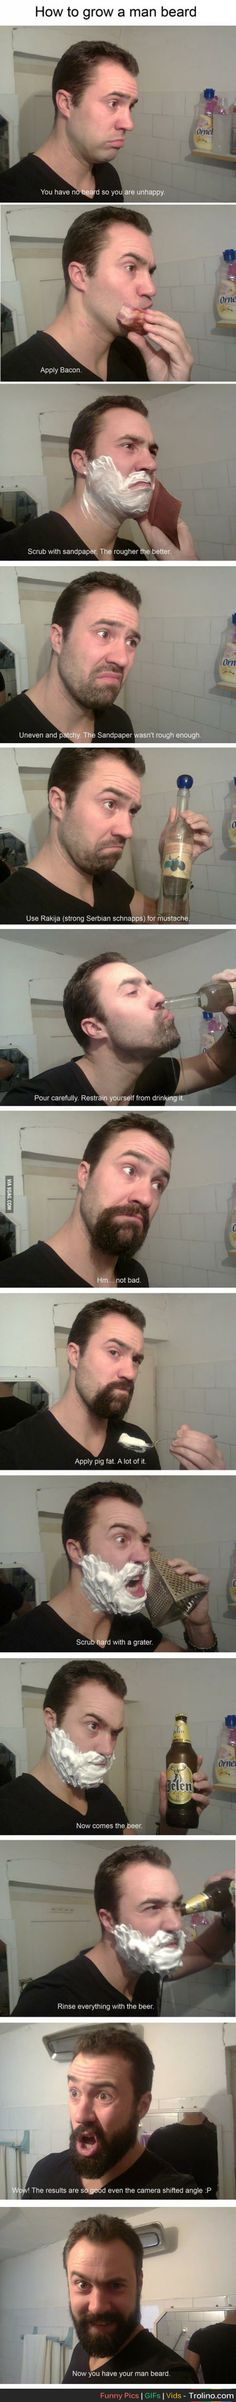 How to grow a beard!! So trying this